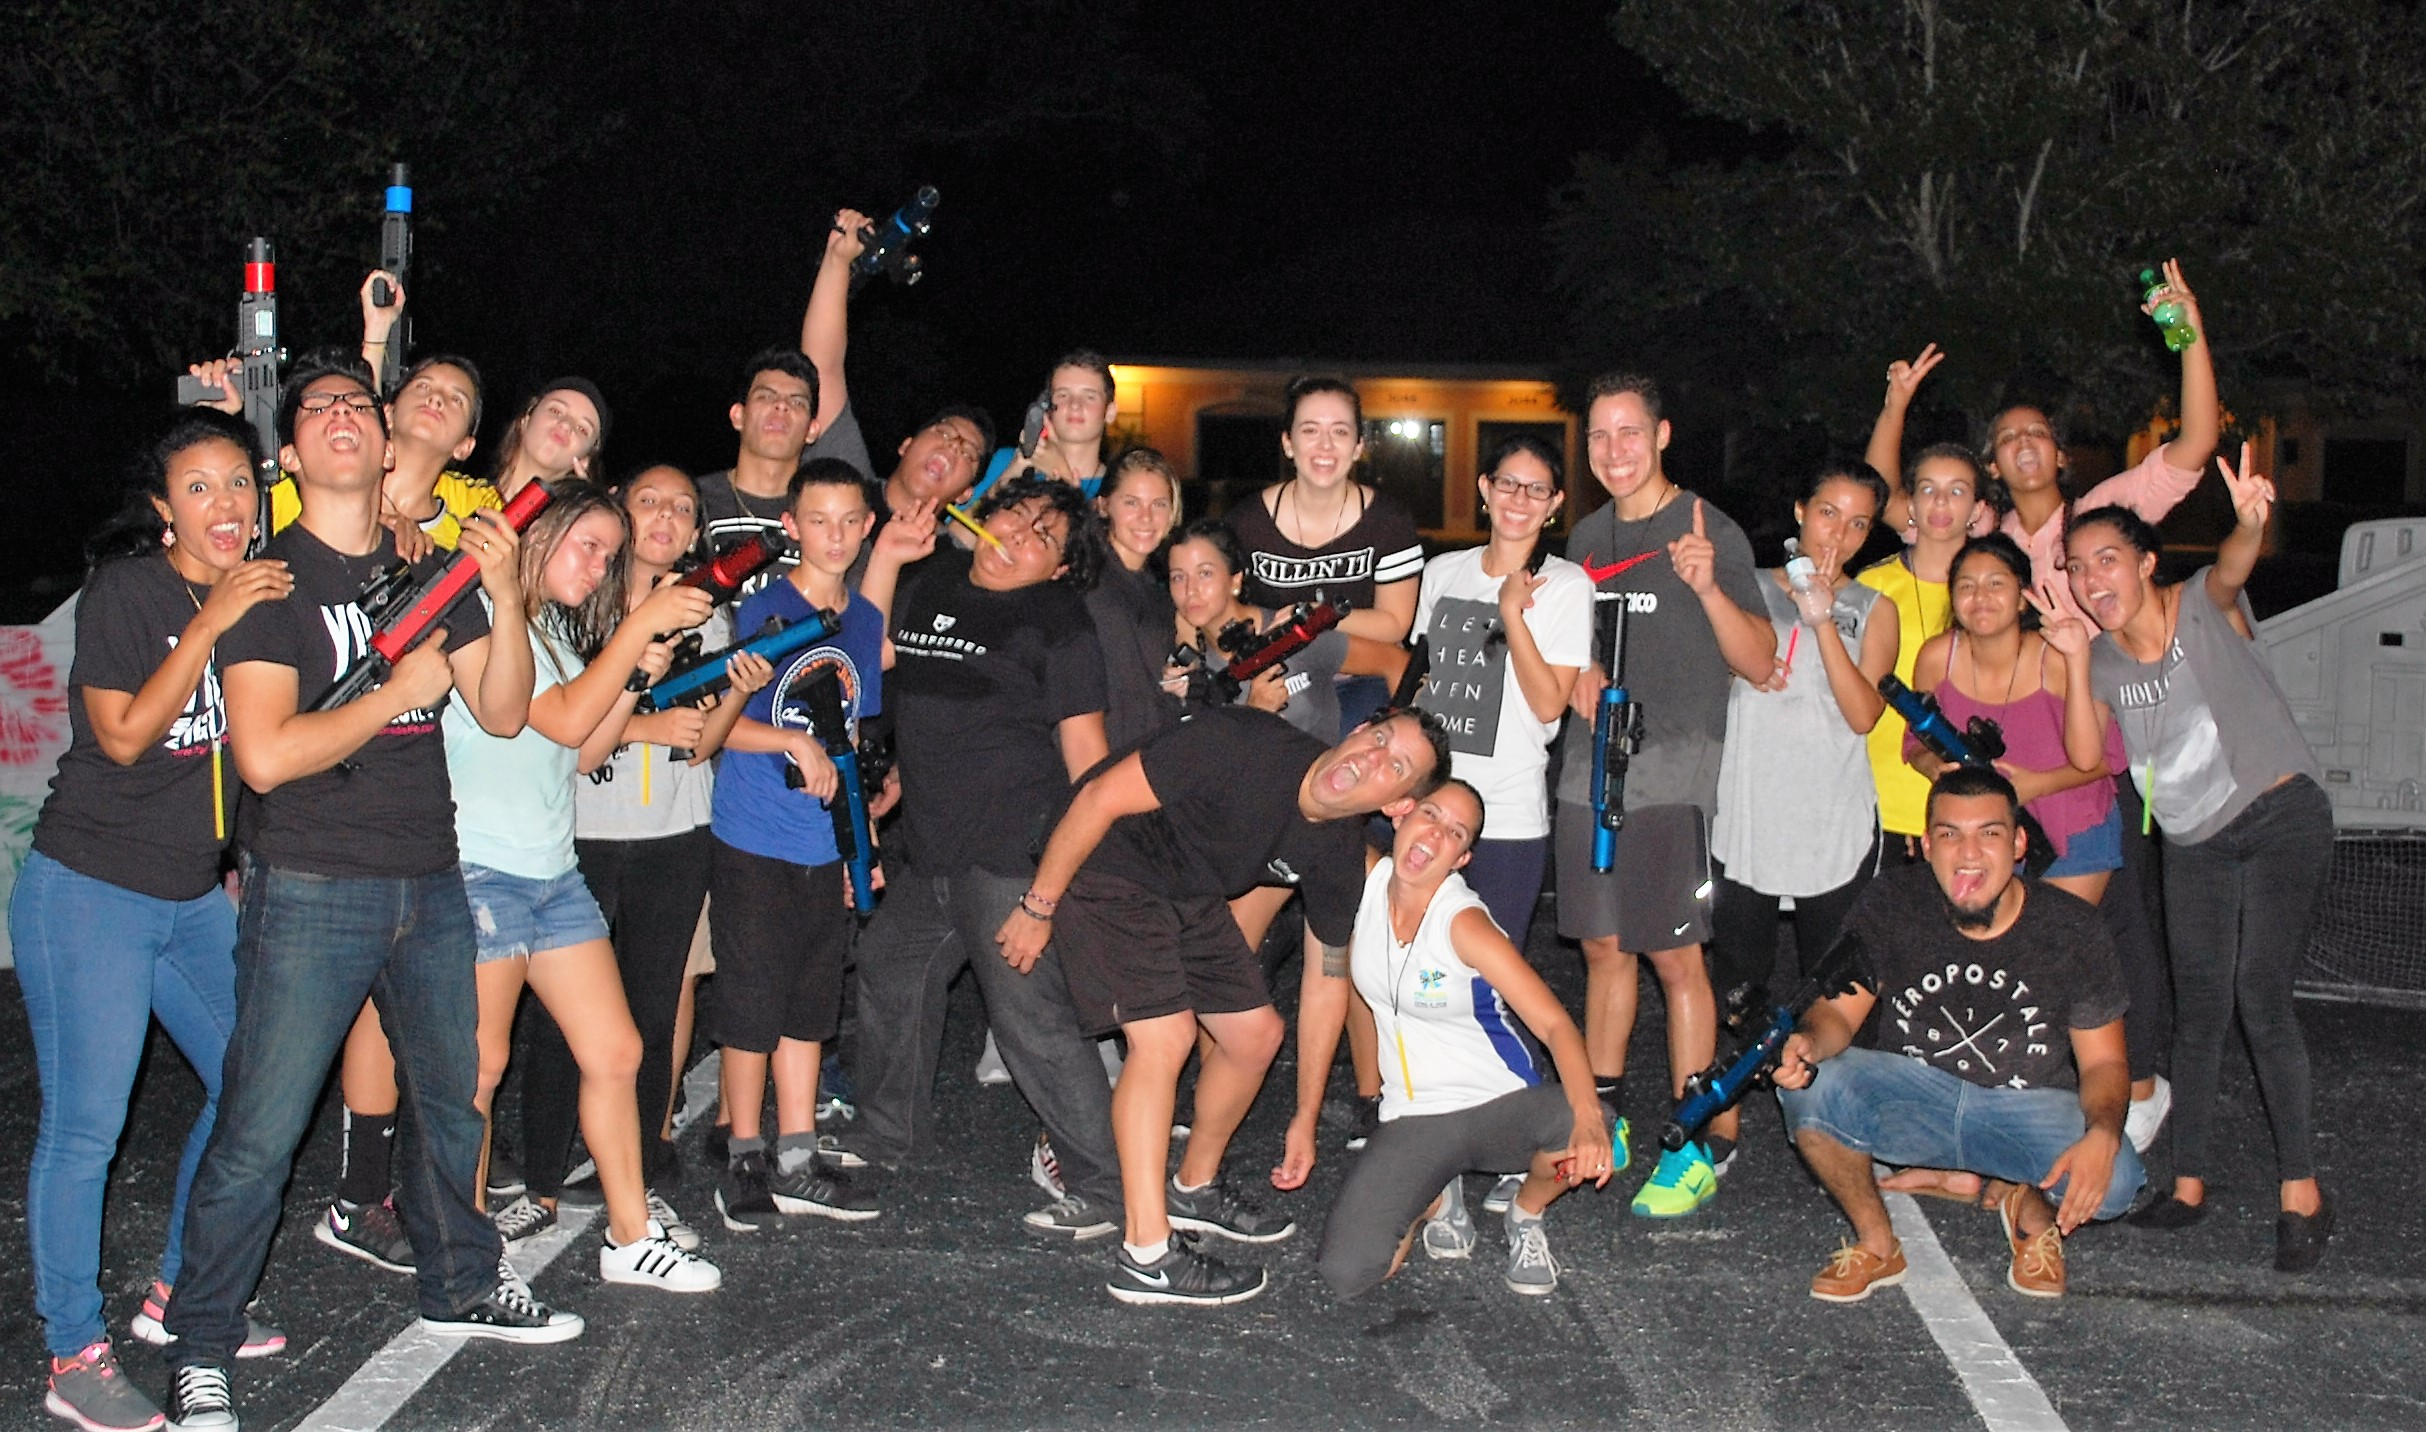 Youth Group Party Ideas, Sarasota